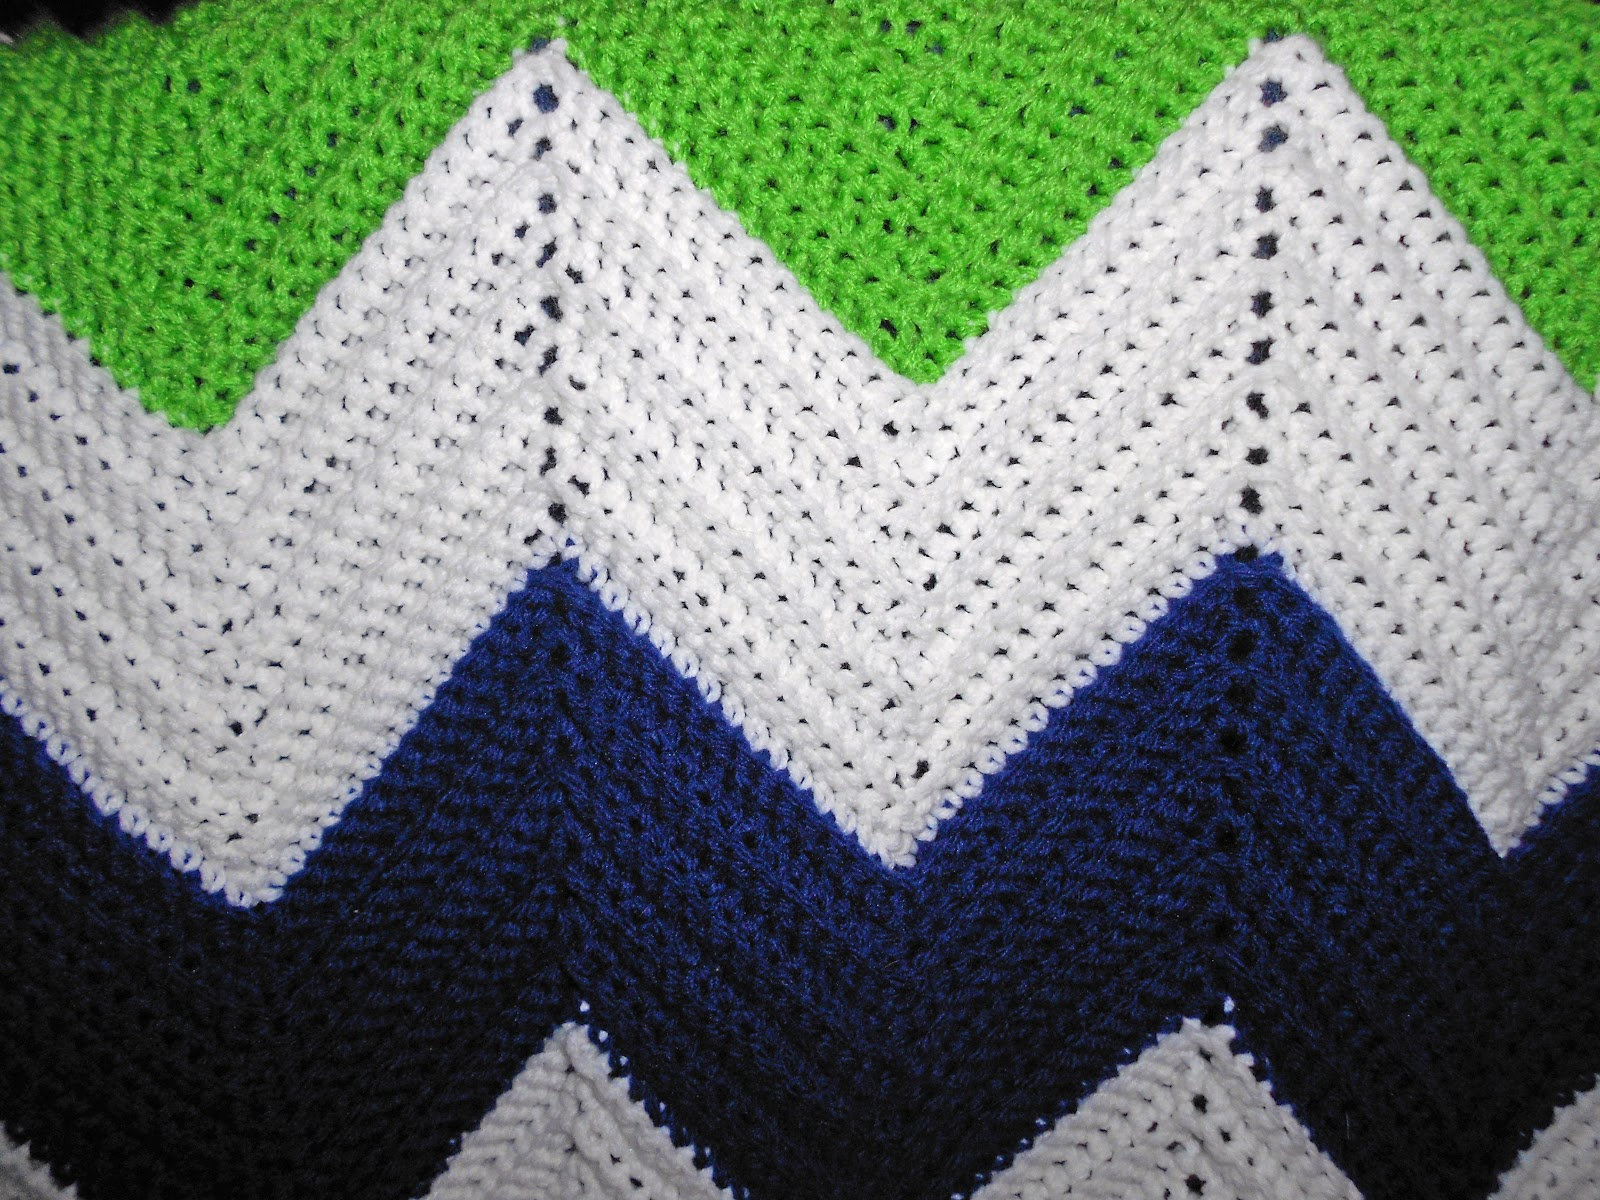 Crochet Stitches Chevron : Chevron Crochet Pattern Free